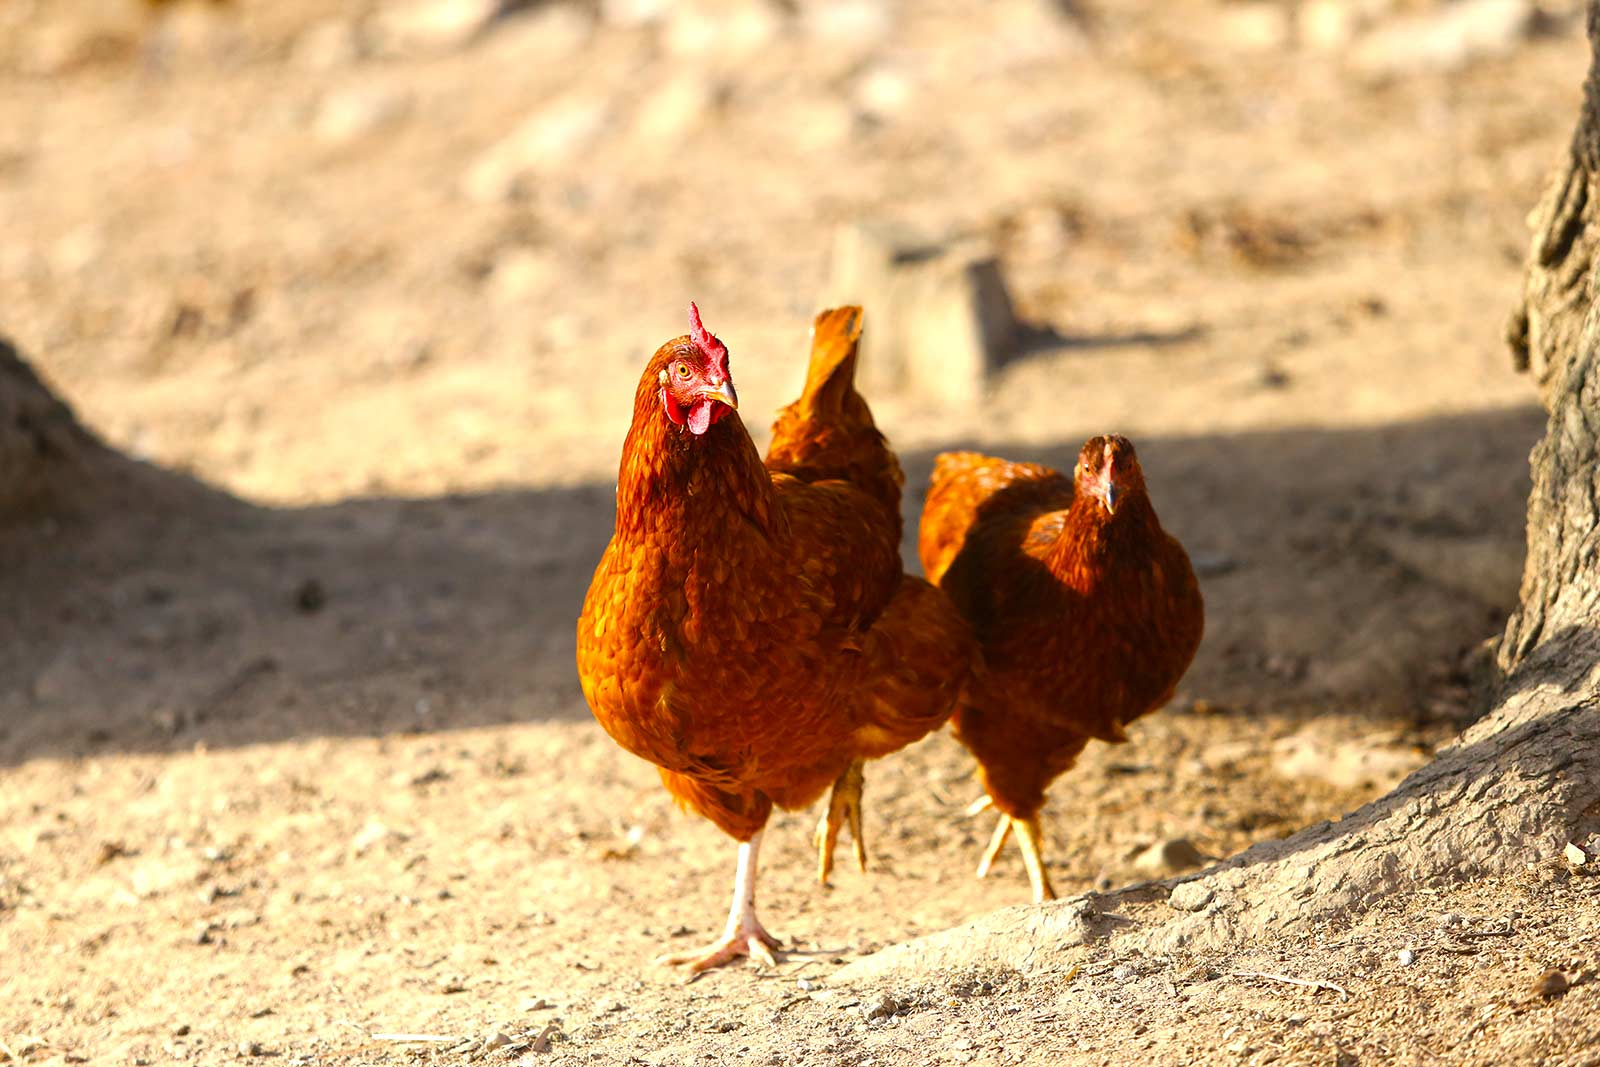 brown-chickens-pecking